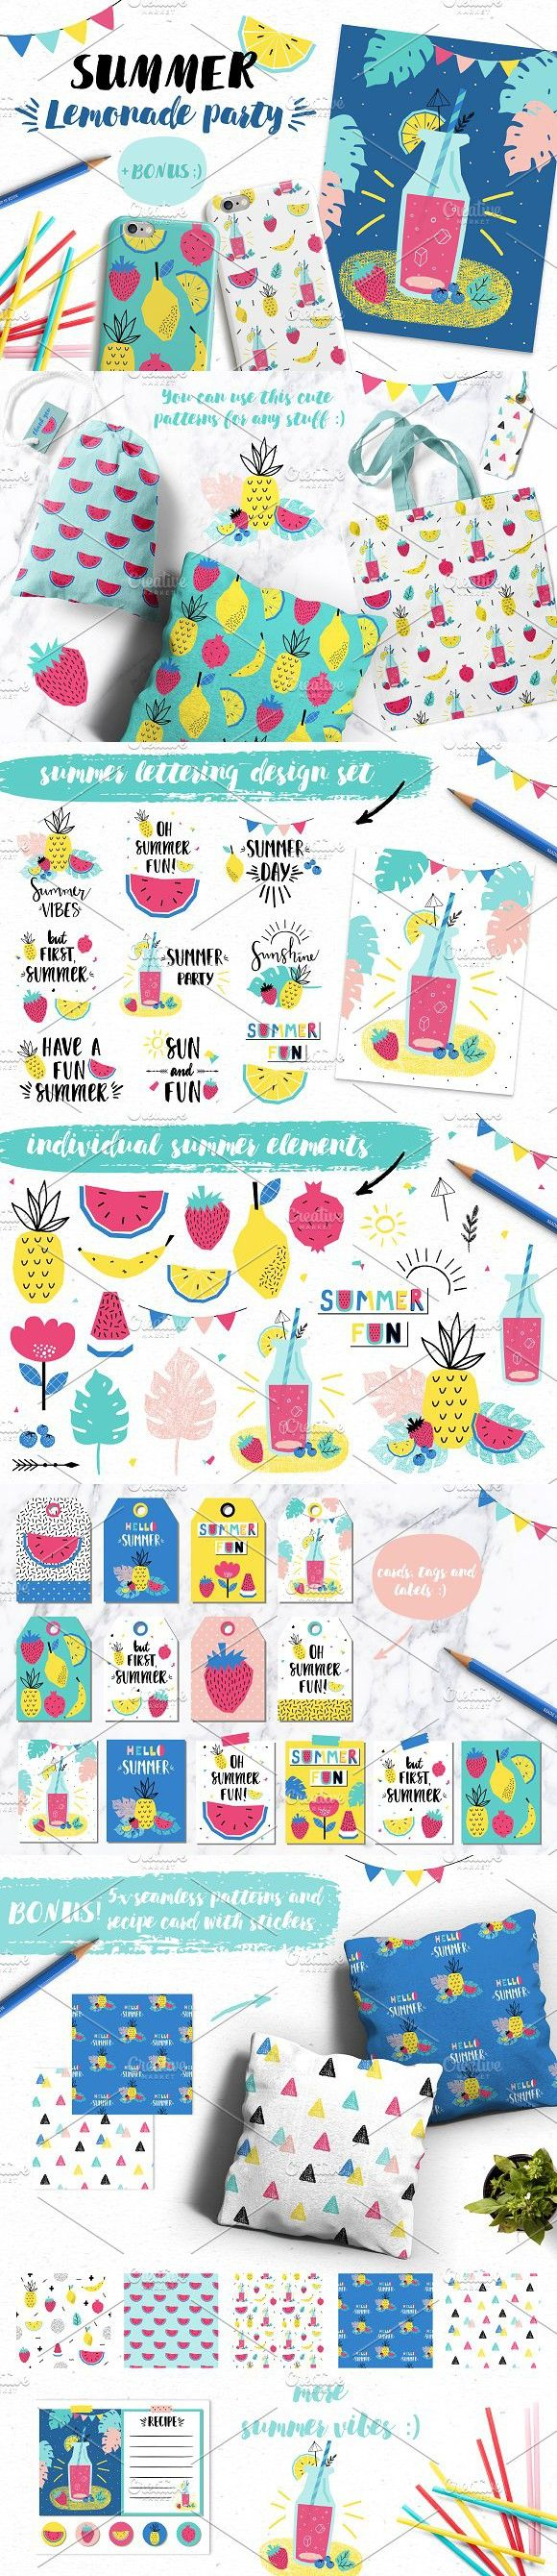 Design Templates, Poster Templates, Party Wedding, Wedding Fonts, Wedding  Cards, Garden Parties, Hello Summer, Lemonade, Gift Cards  Fun Poster Templates